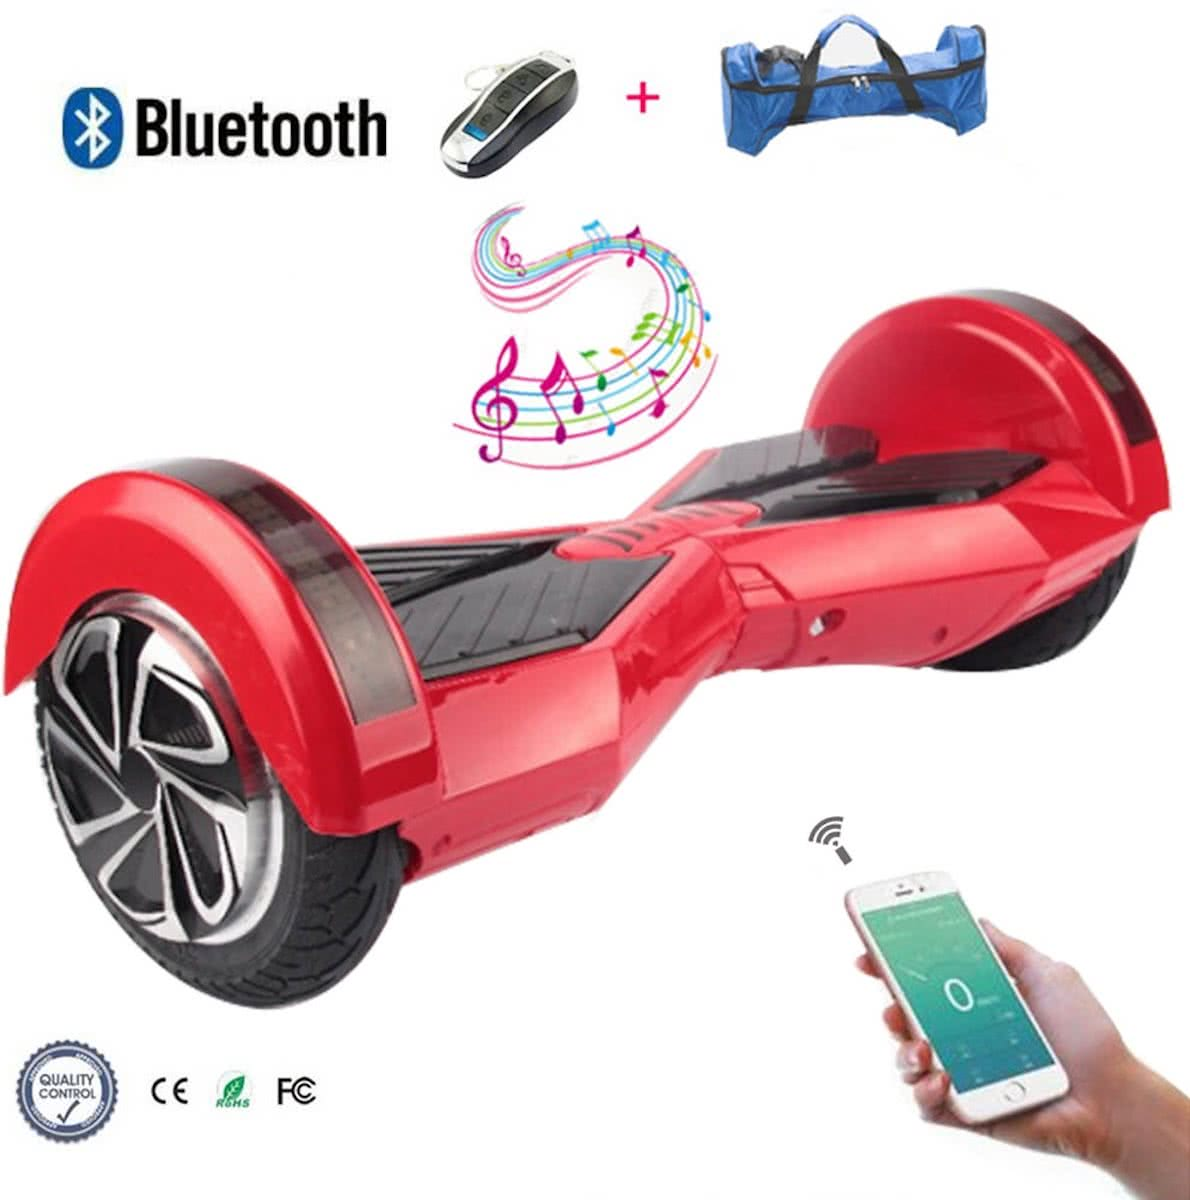 COOL & FUN Hoverboard Bluetooth, Elektrische Scooter Zelfbalansering, Gyropod Connected 8 inch rood zwart